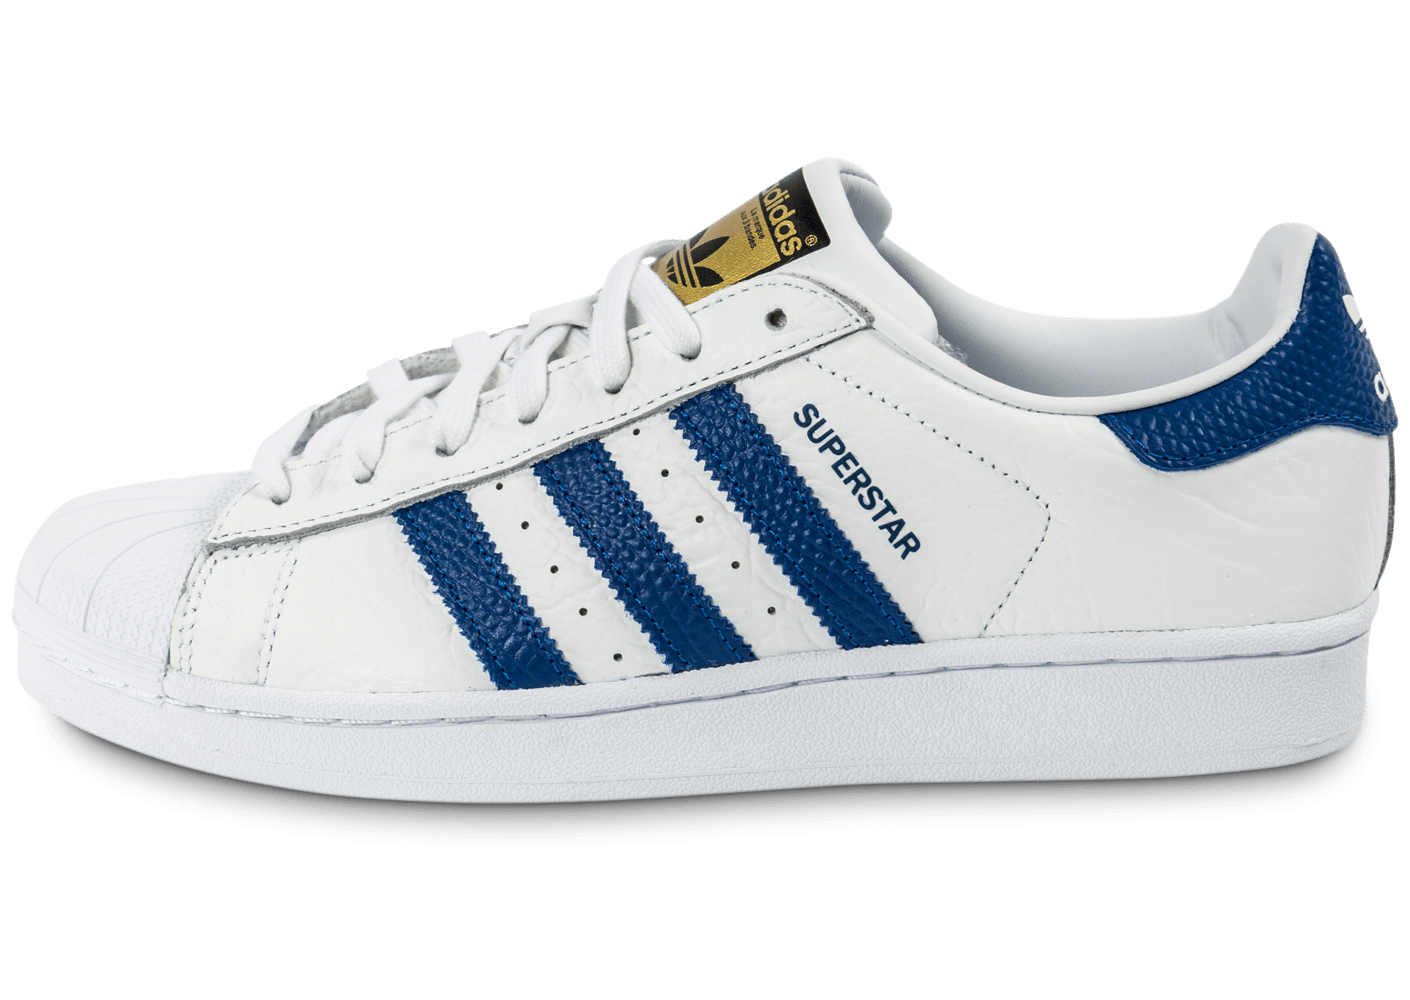 adidas superstar animal blanc bleu chaussures homme chausport. Black Bedroom Furniture Sets. Home Design Ideas